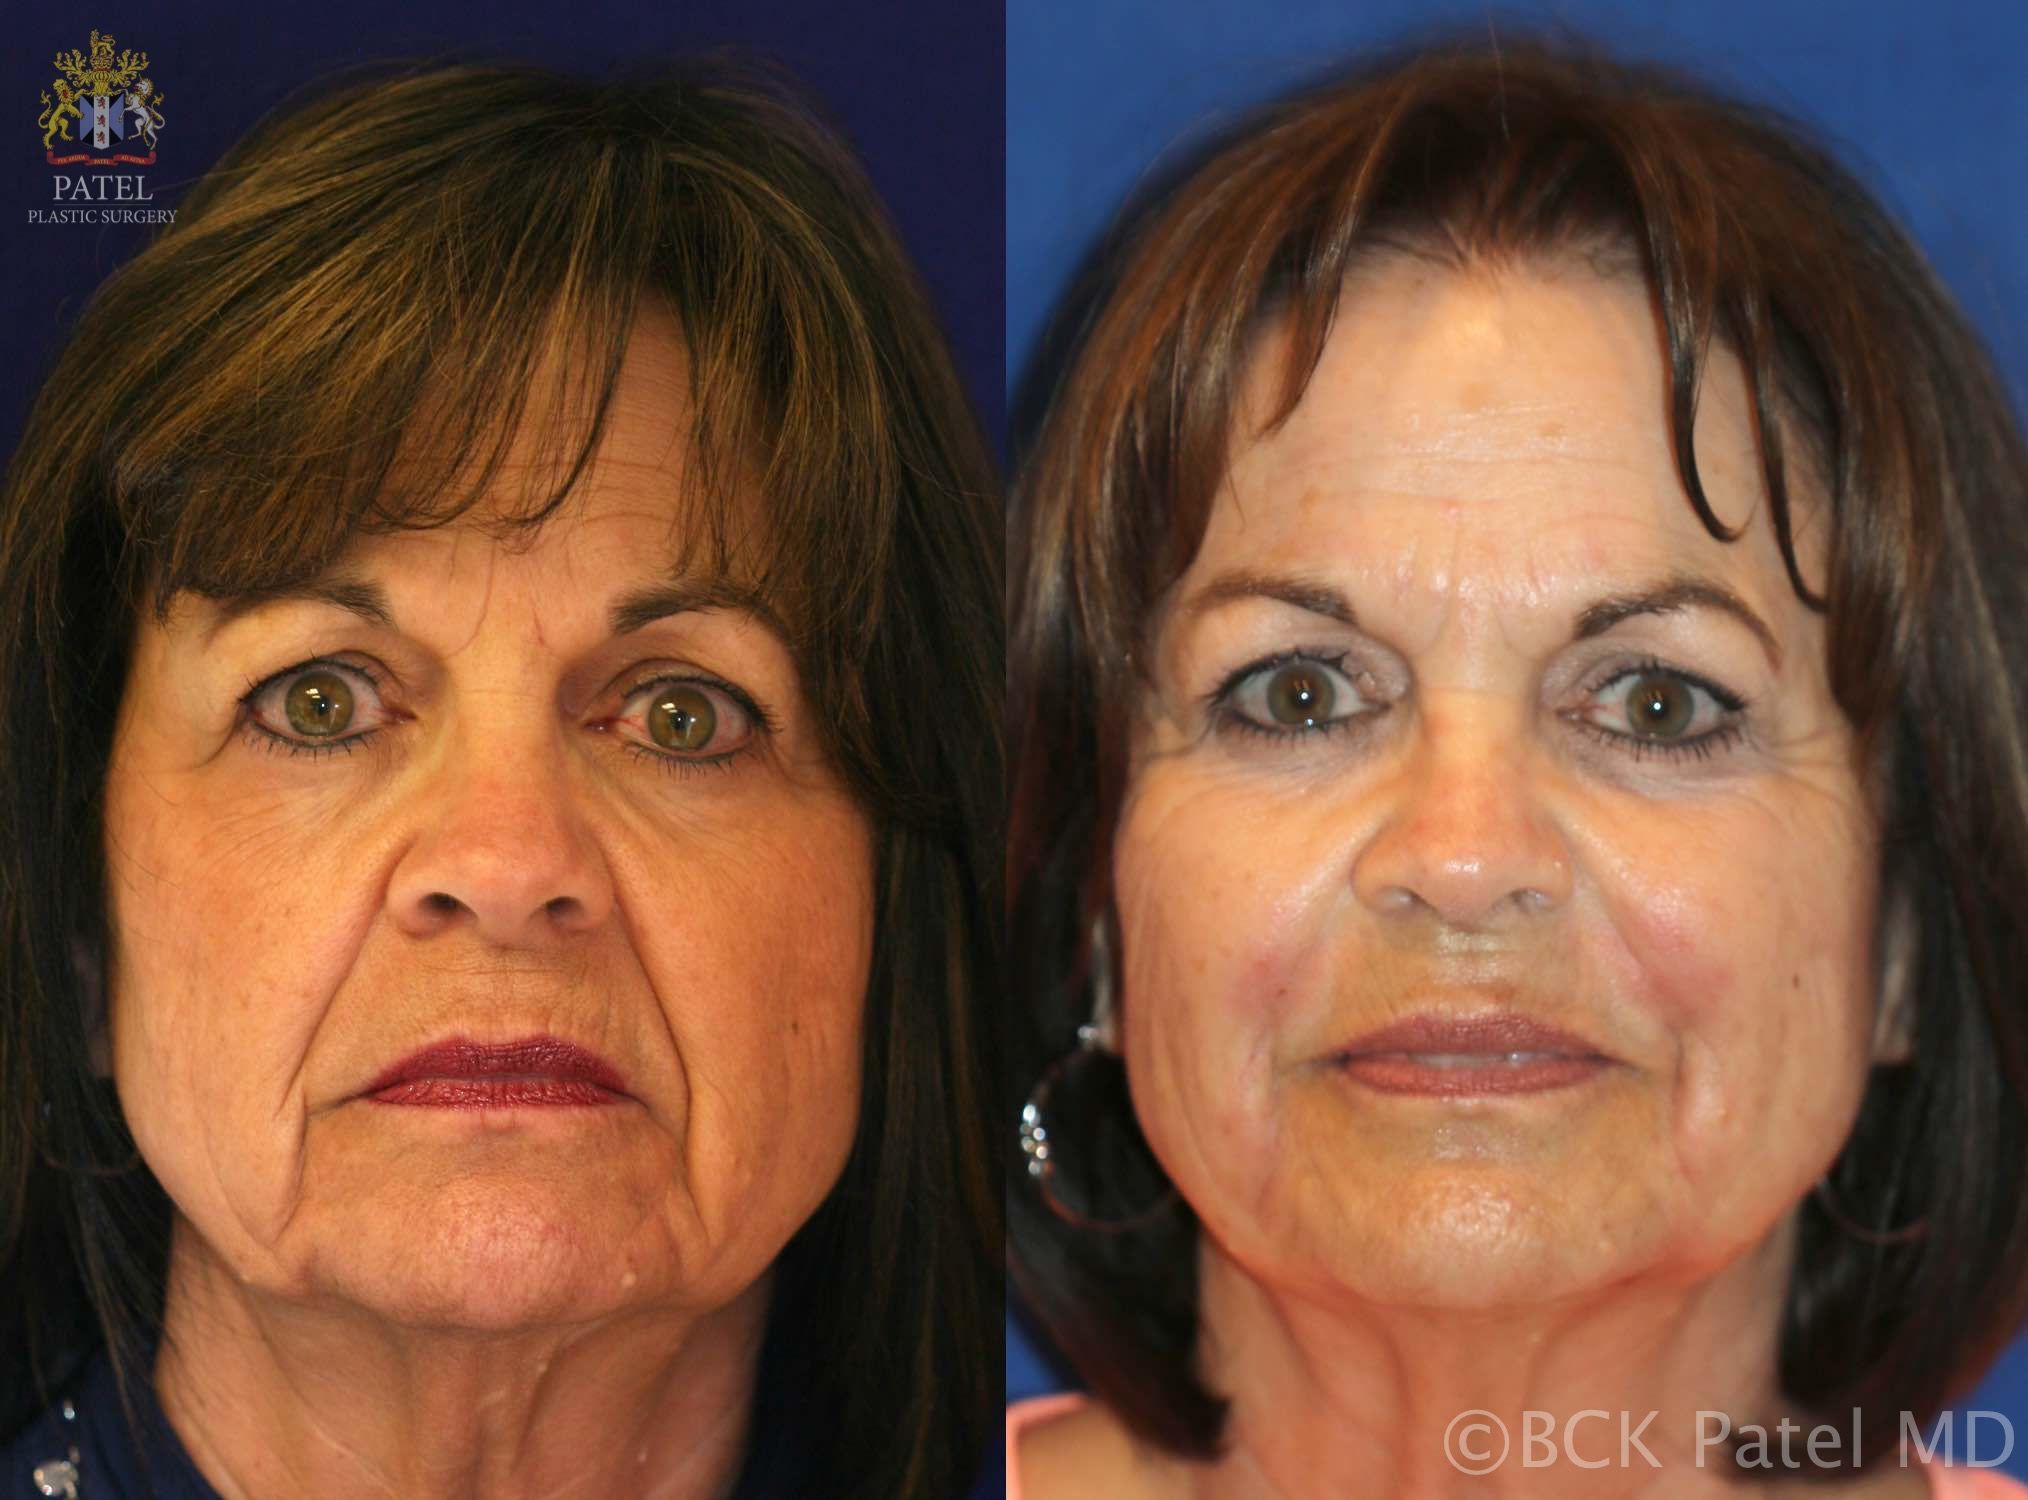 englishsurgeon.com. Photos showing the improvement in frown lines and nasolabail folds. BCK Patel MD